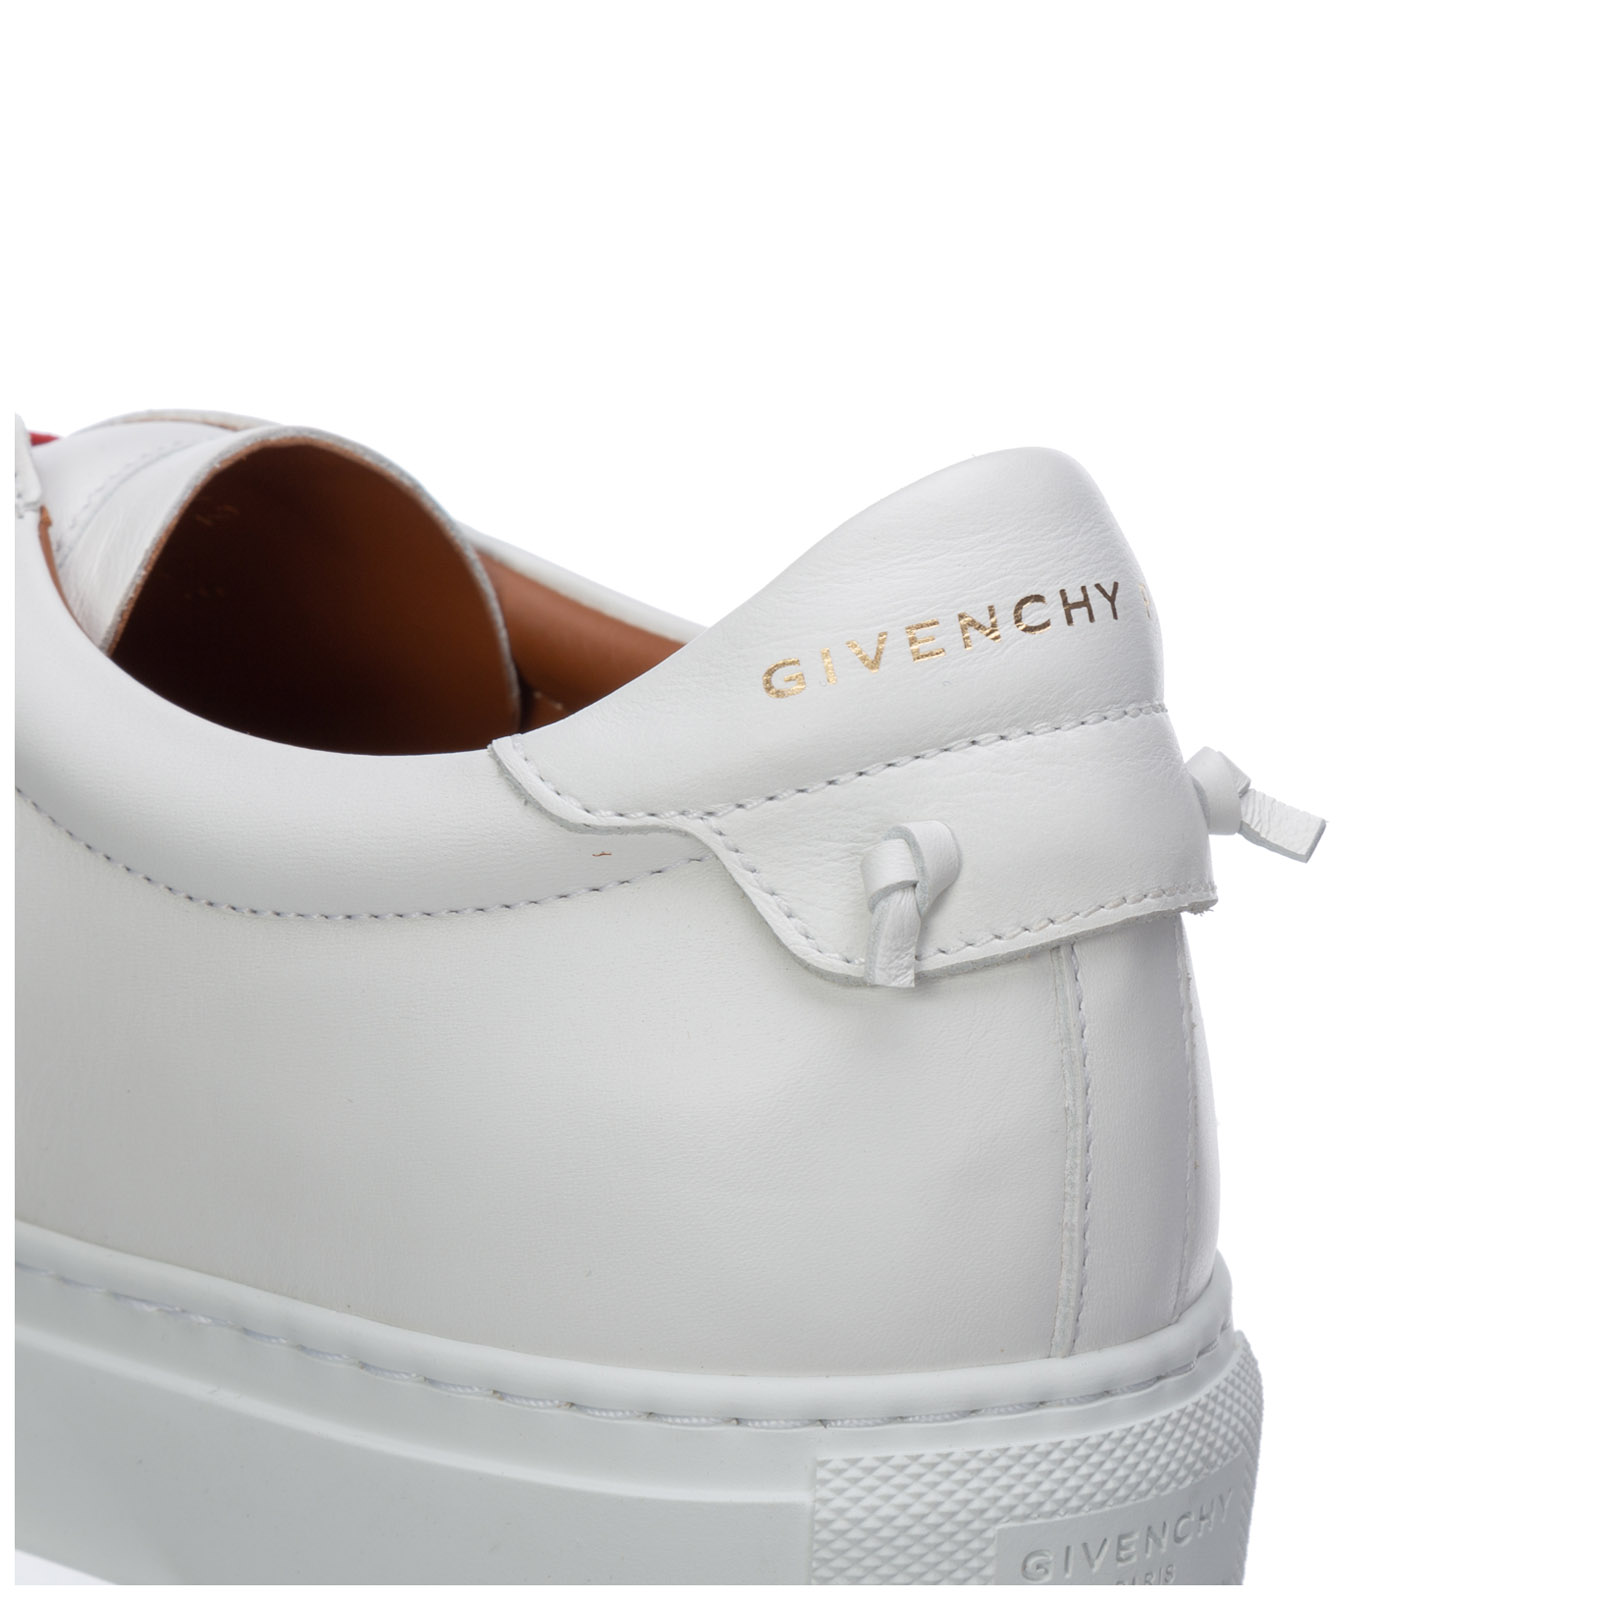 Sneakers Givenchy Urban street